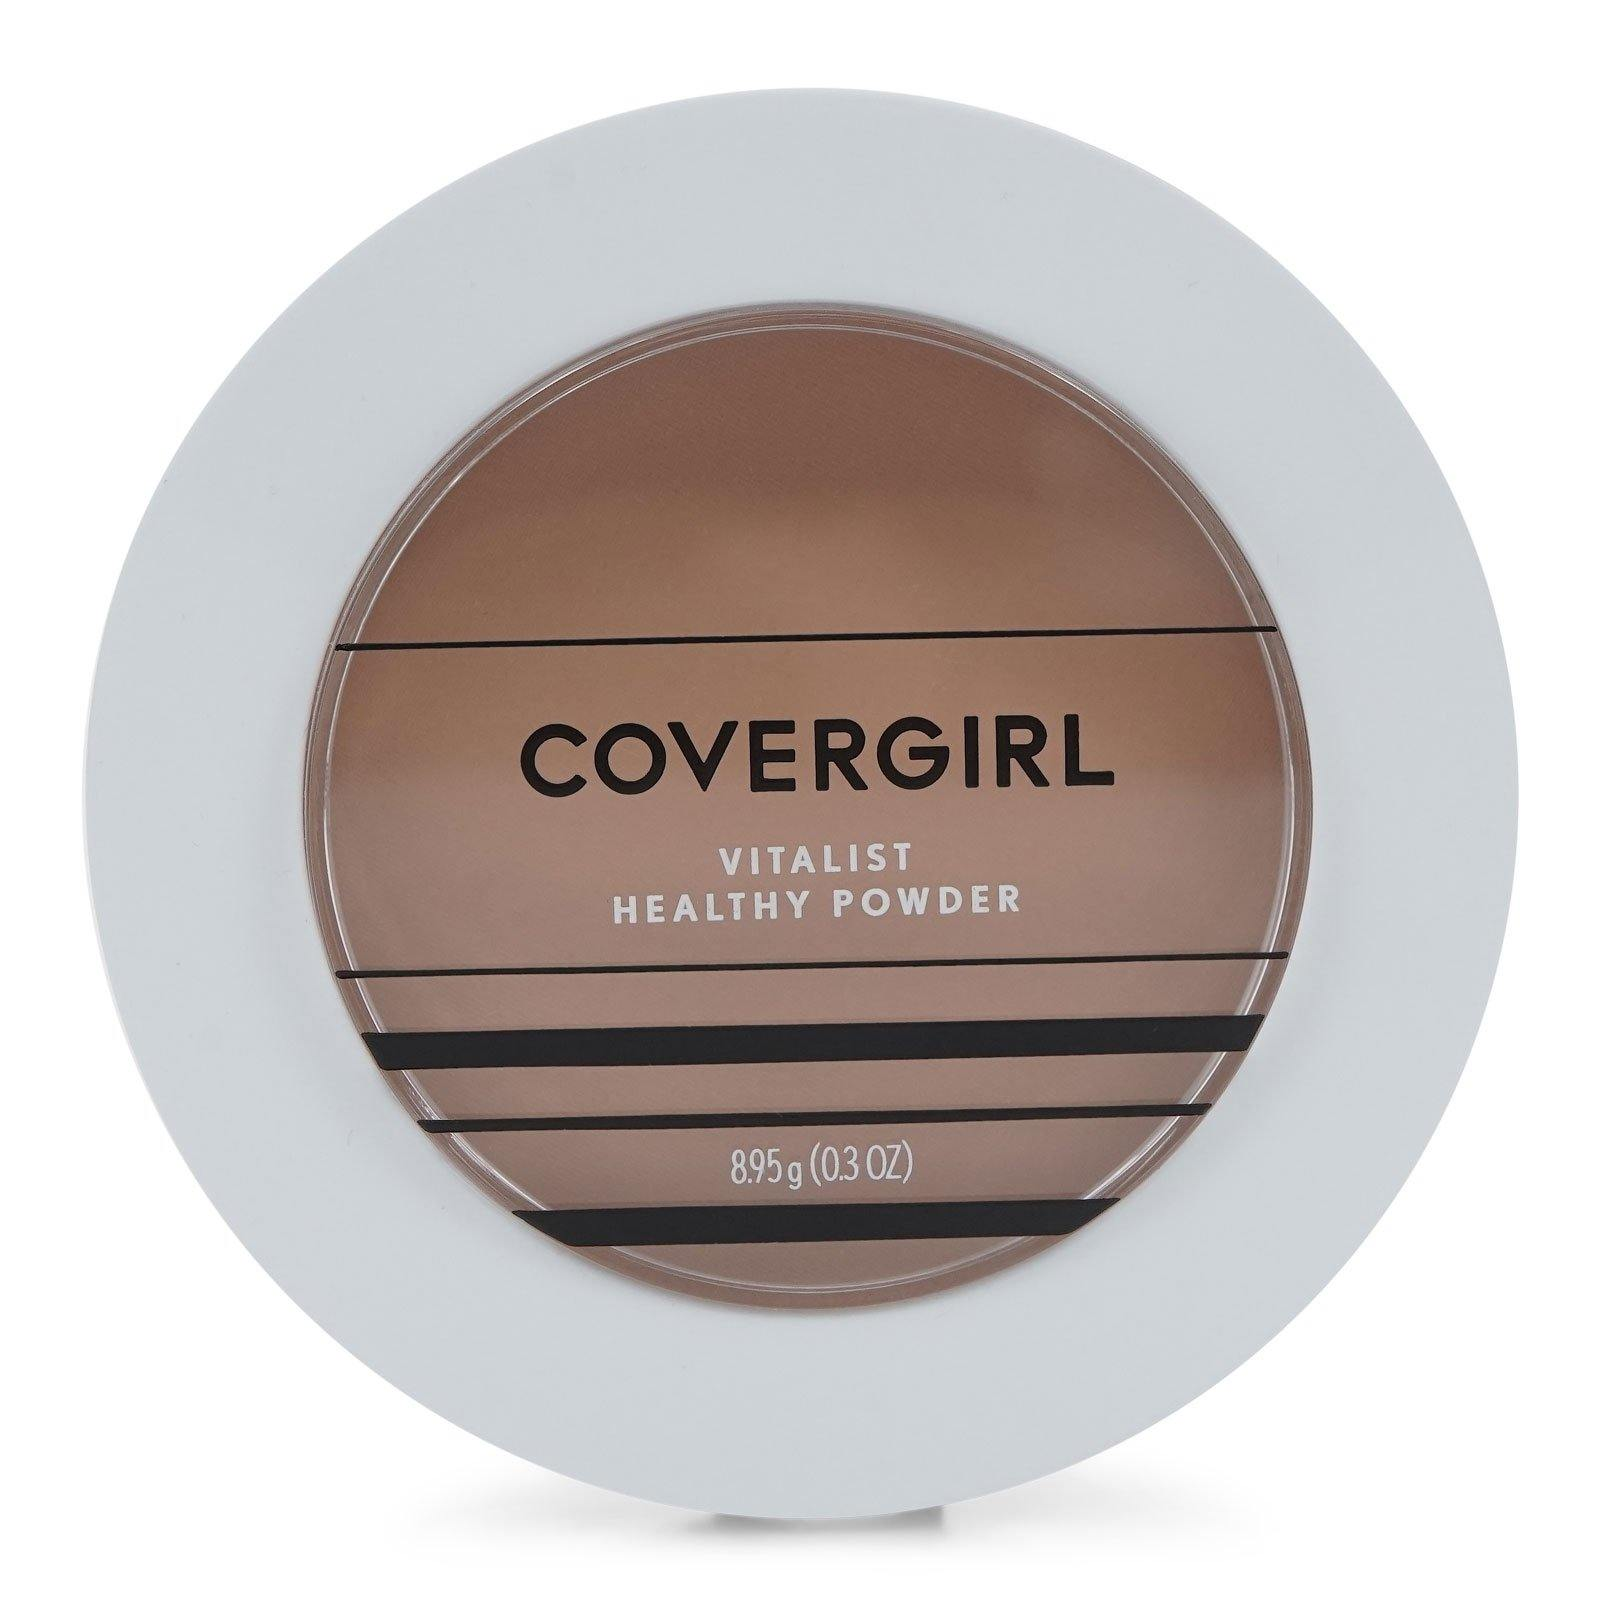 Covergirl VITALIST HEALTHY POWDER - Case of 12 units